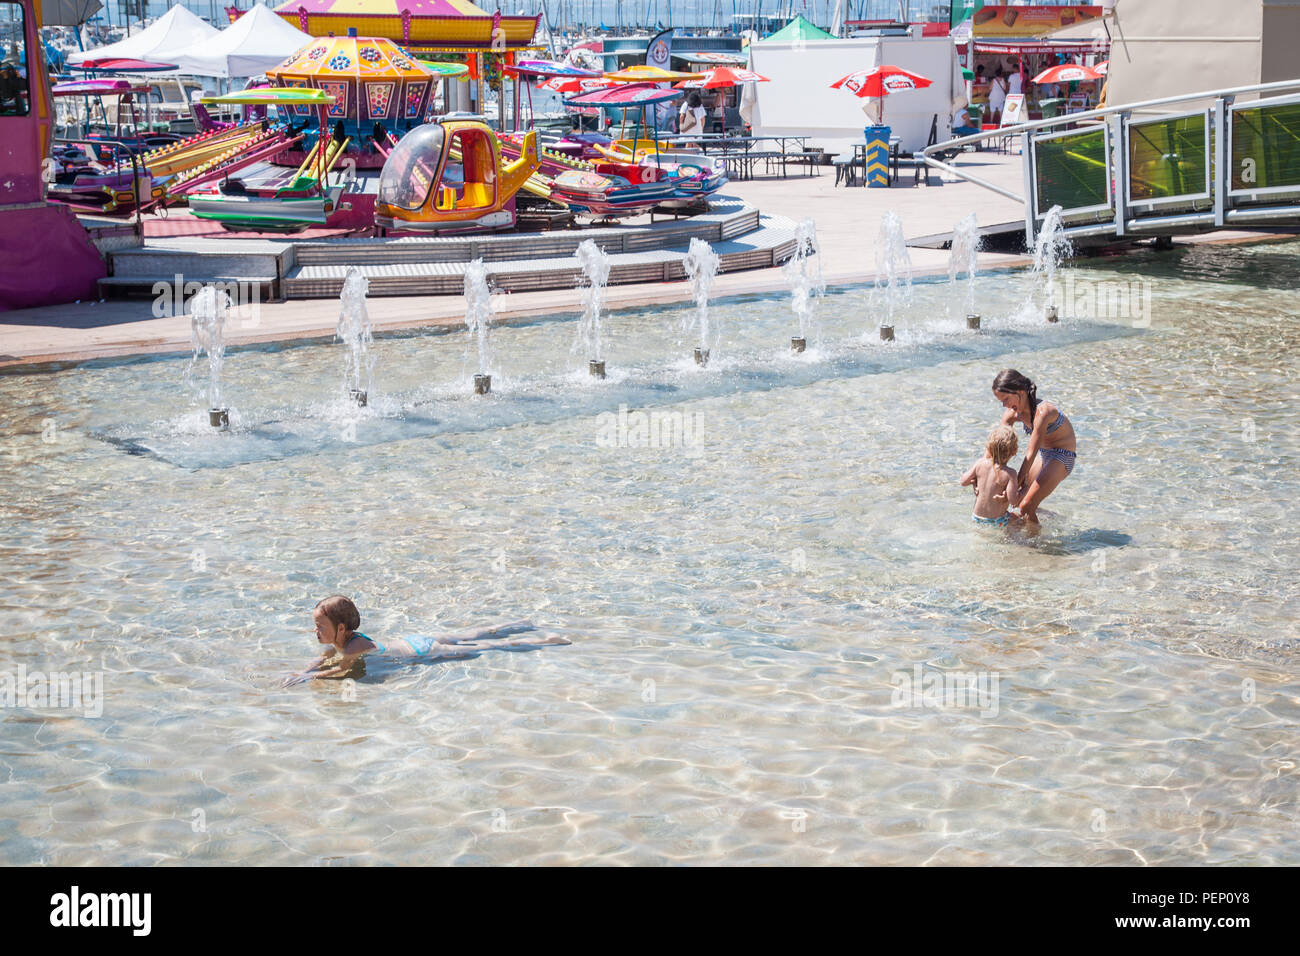 Small kids enjoying playtime in water fountain pool on Place de la Navigation, Ouchy park in Lausanne, Switzerland on hot summer day - Stock Image